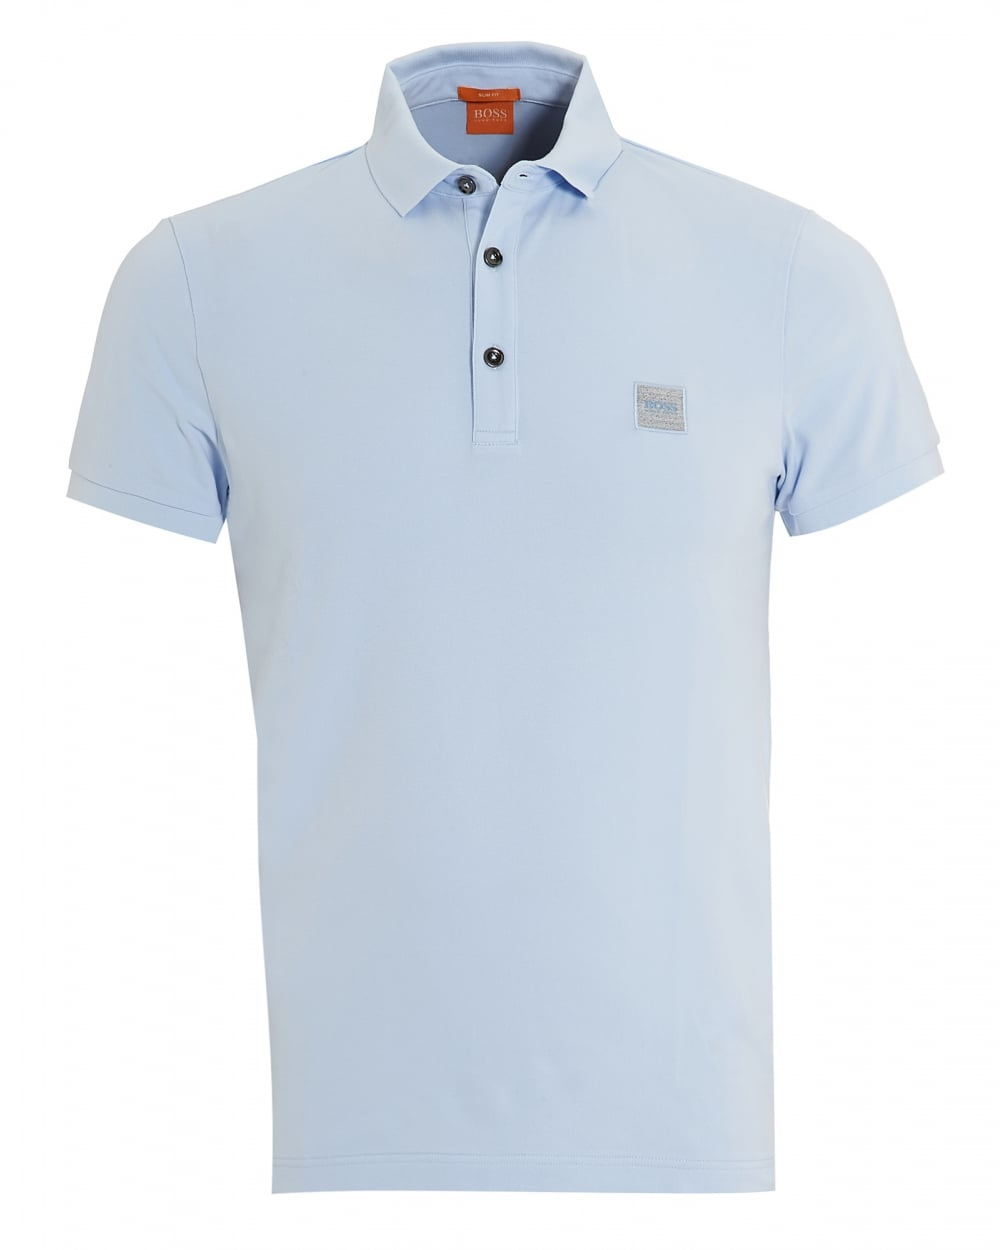 BOSS CASUAL PRIME SLIIM FIT - Polo - light blue iE57QAp